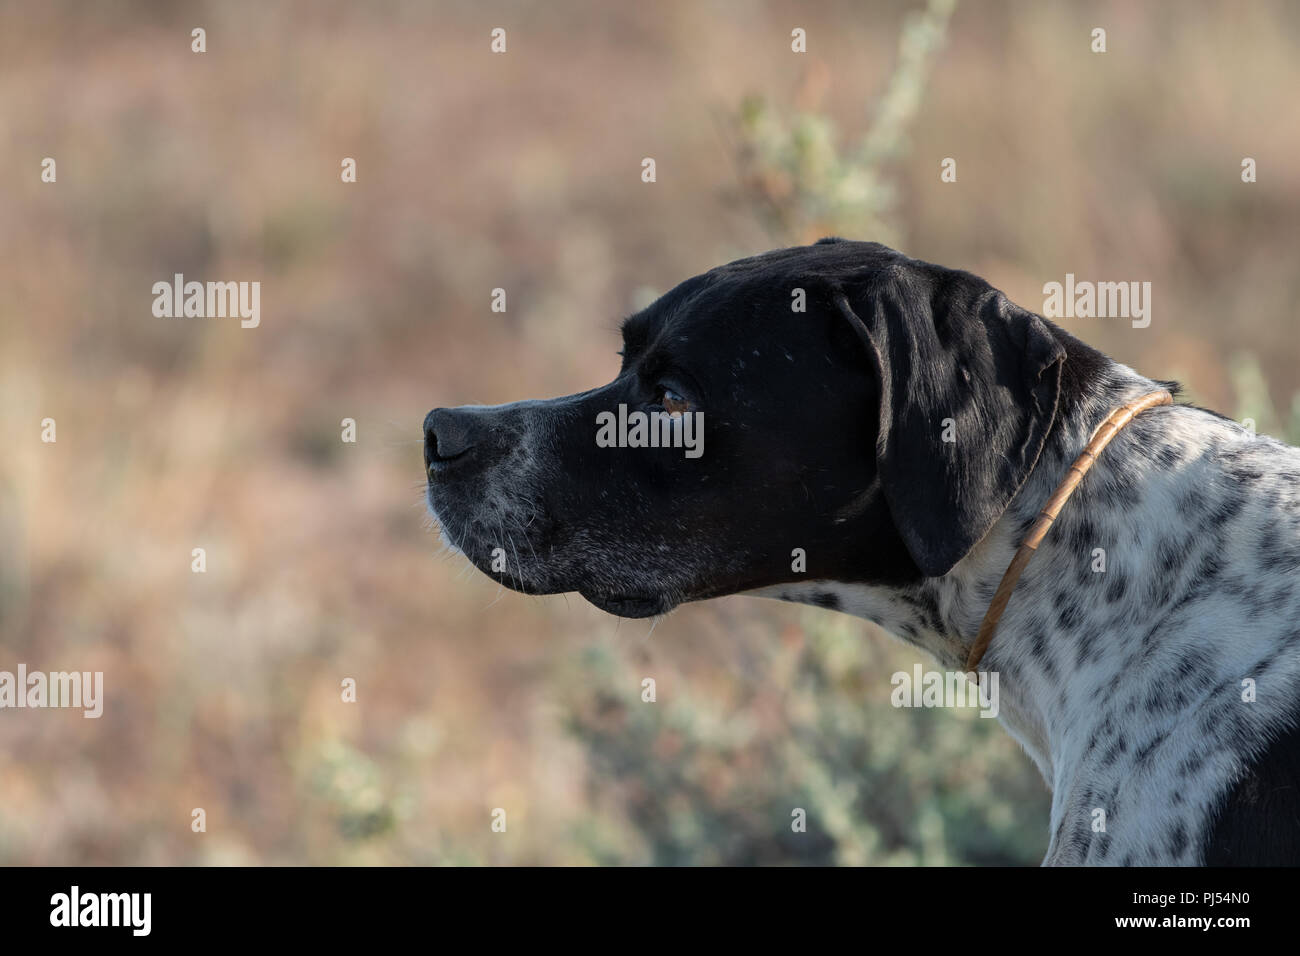 Profile view of Pointer pedigree dog, blurred background - Stock Image